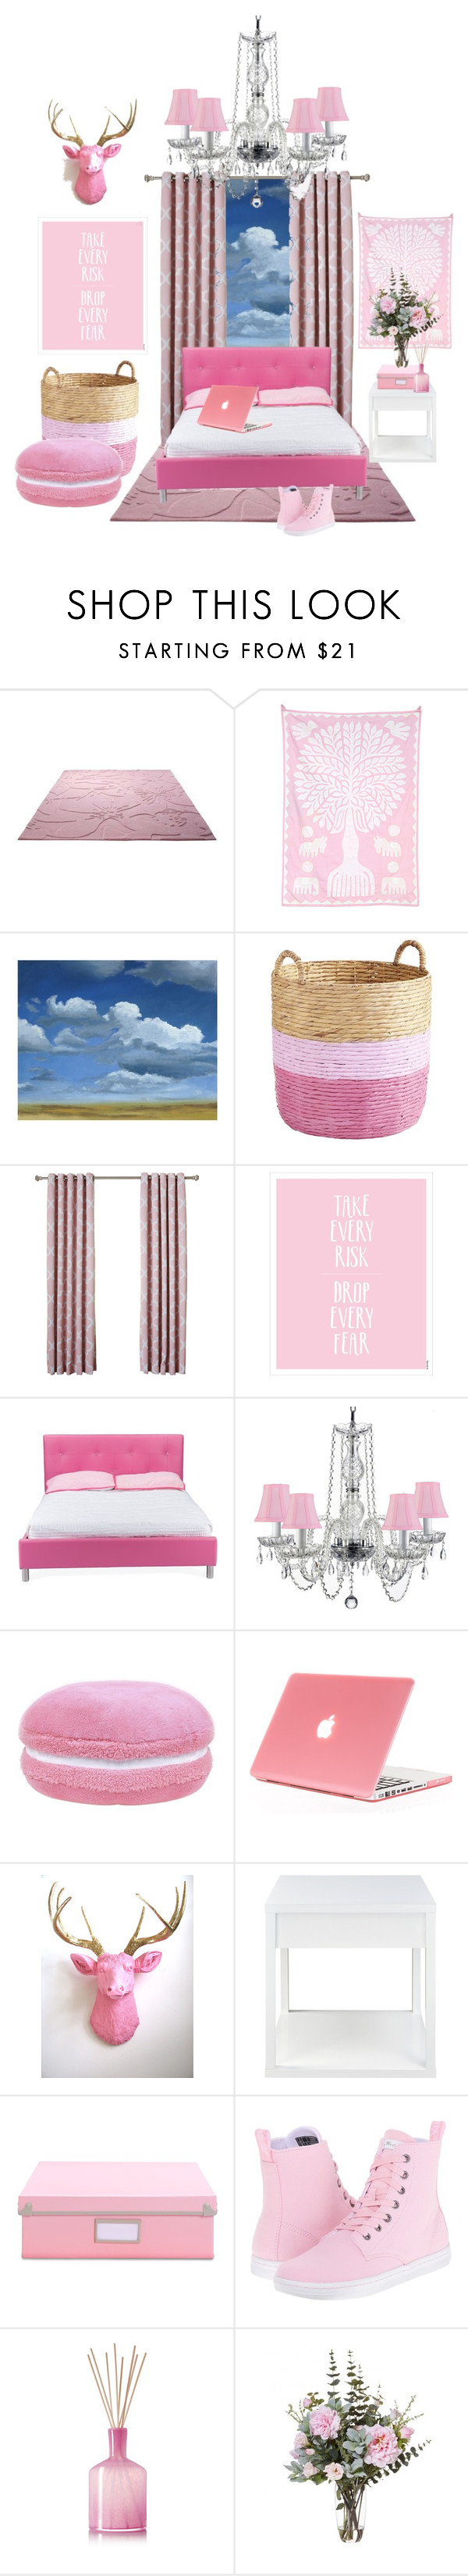 """Pretty in Pink"" by thegreenlife ❤ liked on Polyvore featuring interior, interiors, interior design, home, home decor, interior decorating, ESPRIT, Cultural Intrigue, Grandin Road and Pier 1 Imports"